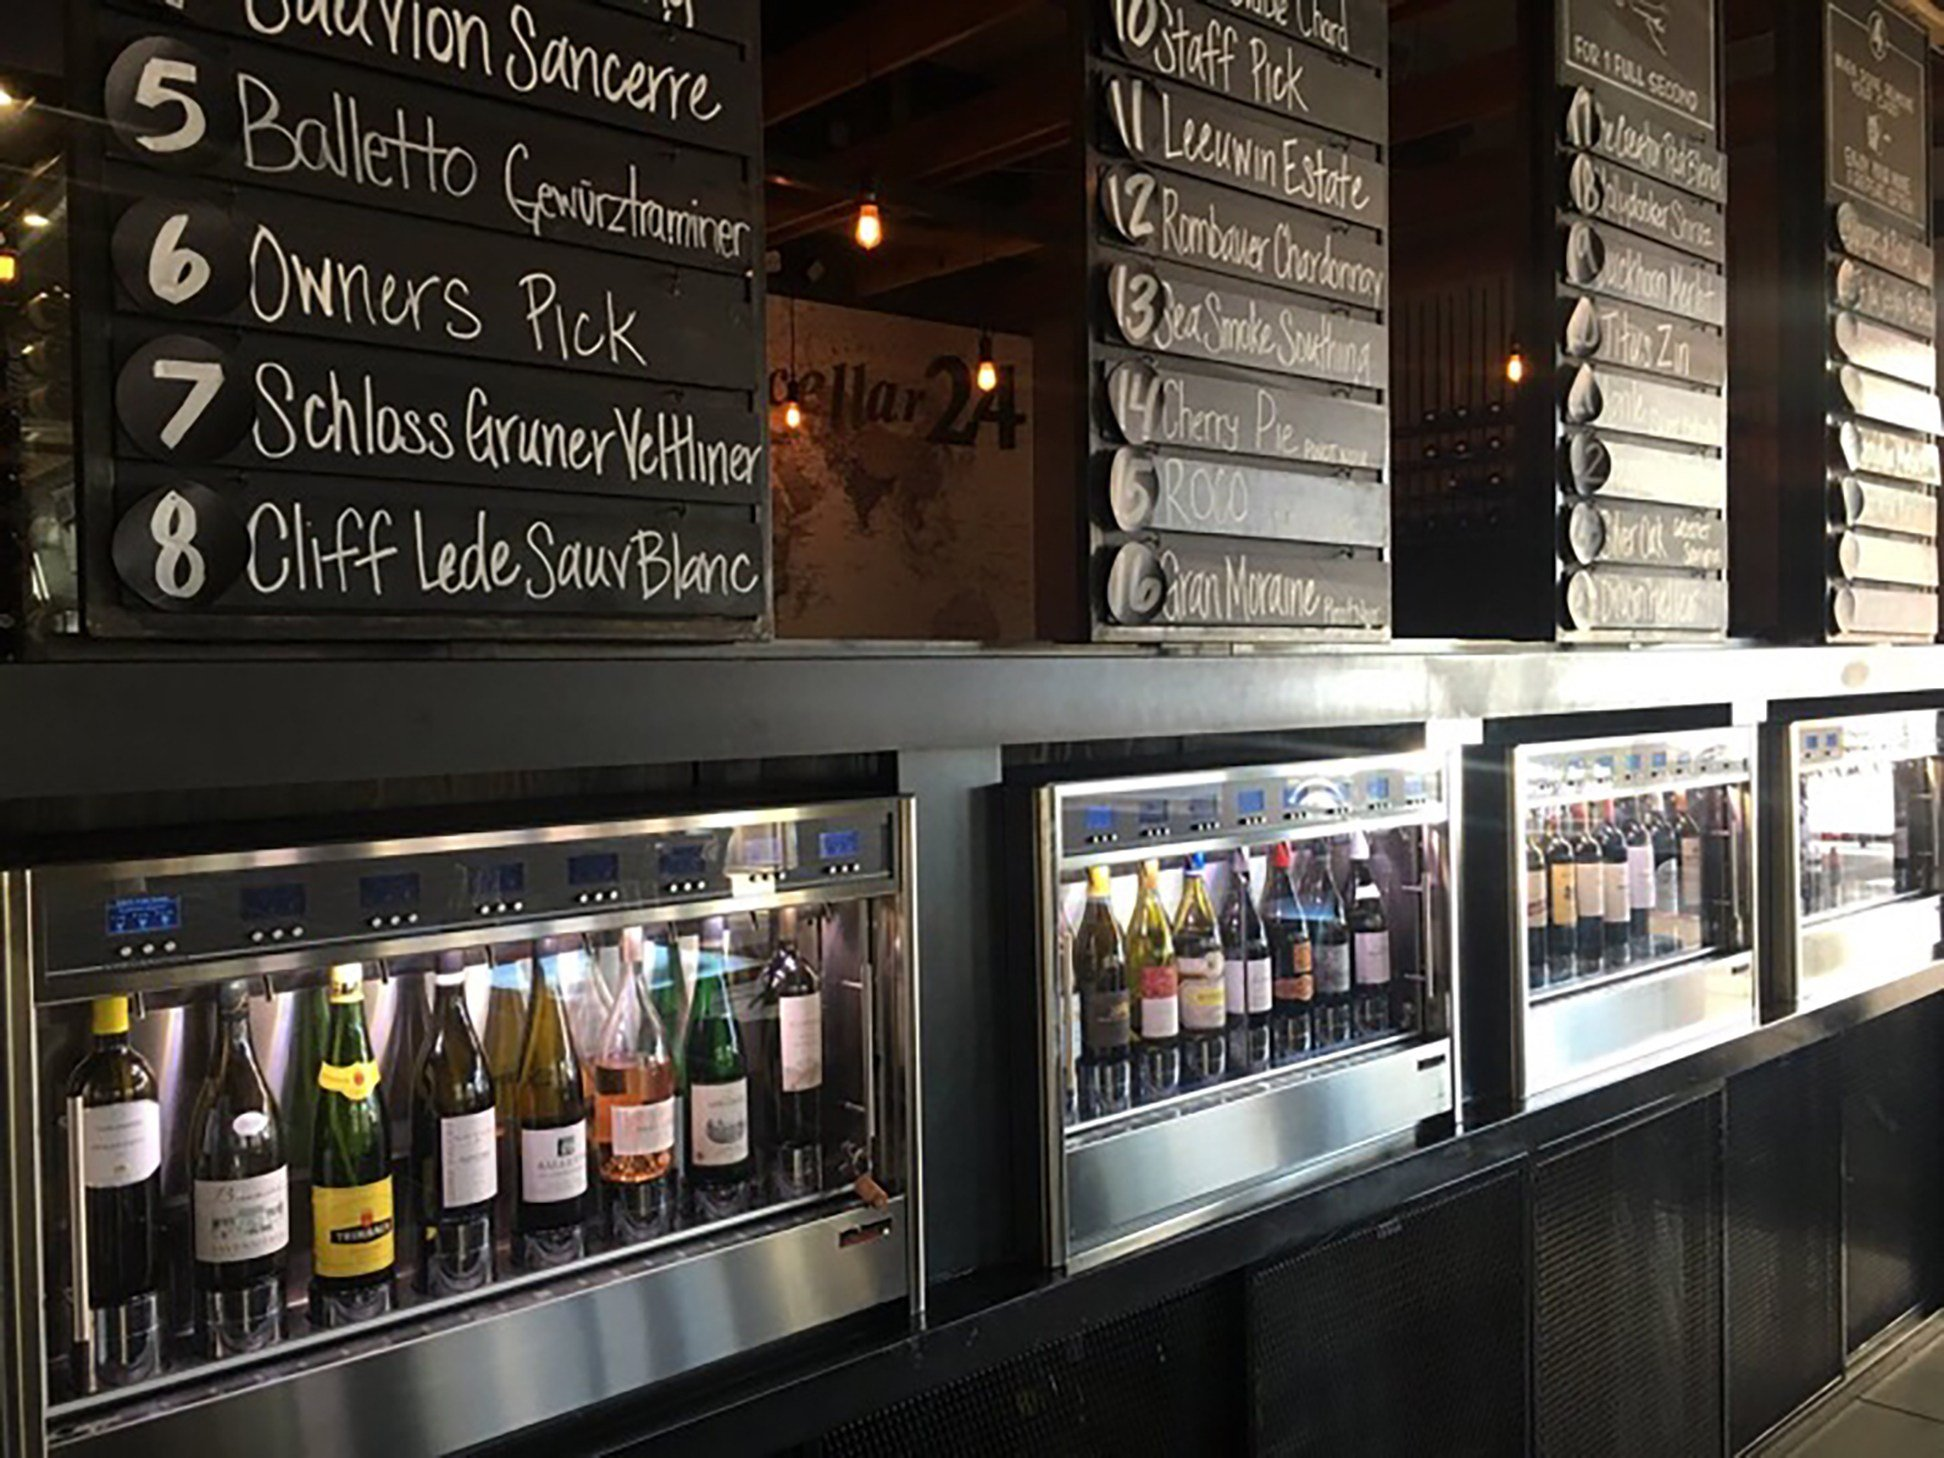 Since opening a few years ago, Sorso Wine Room in Scottsdale has featured an automated wine dispenser that allows customers to choose from up to 32 wines from around the world. (Photo:Tim Johns/Cronkite News)